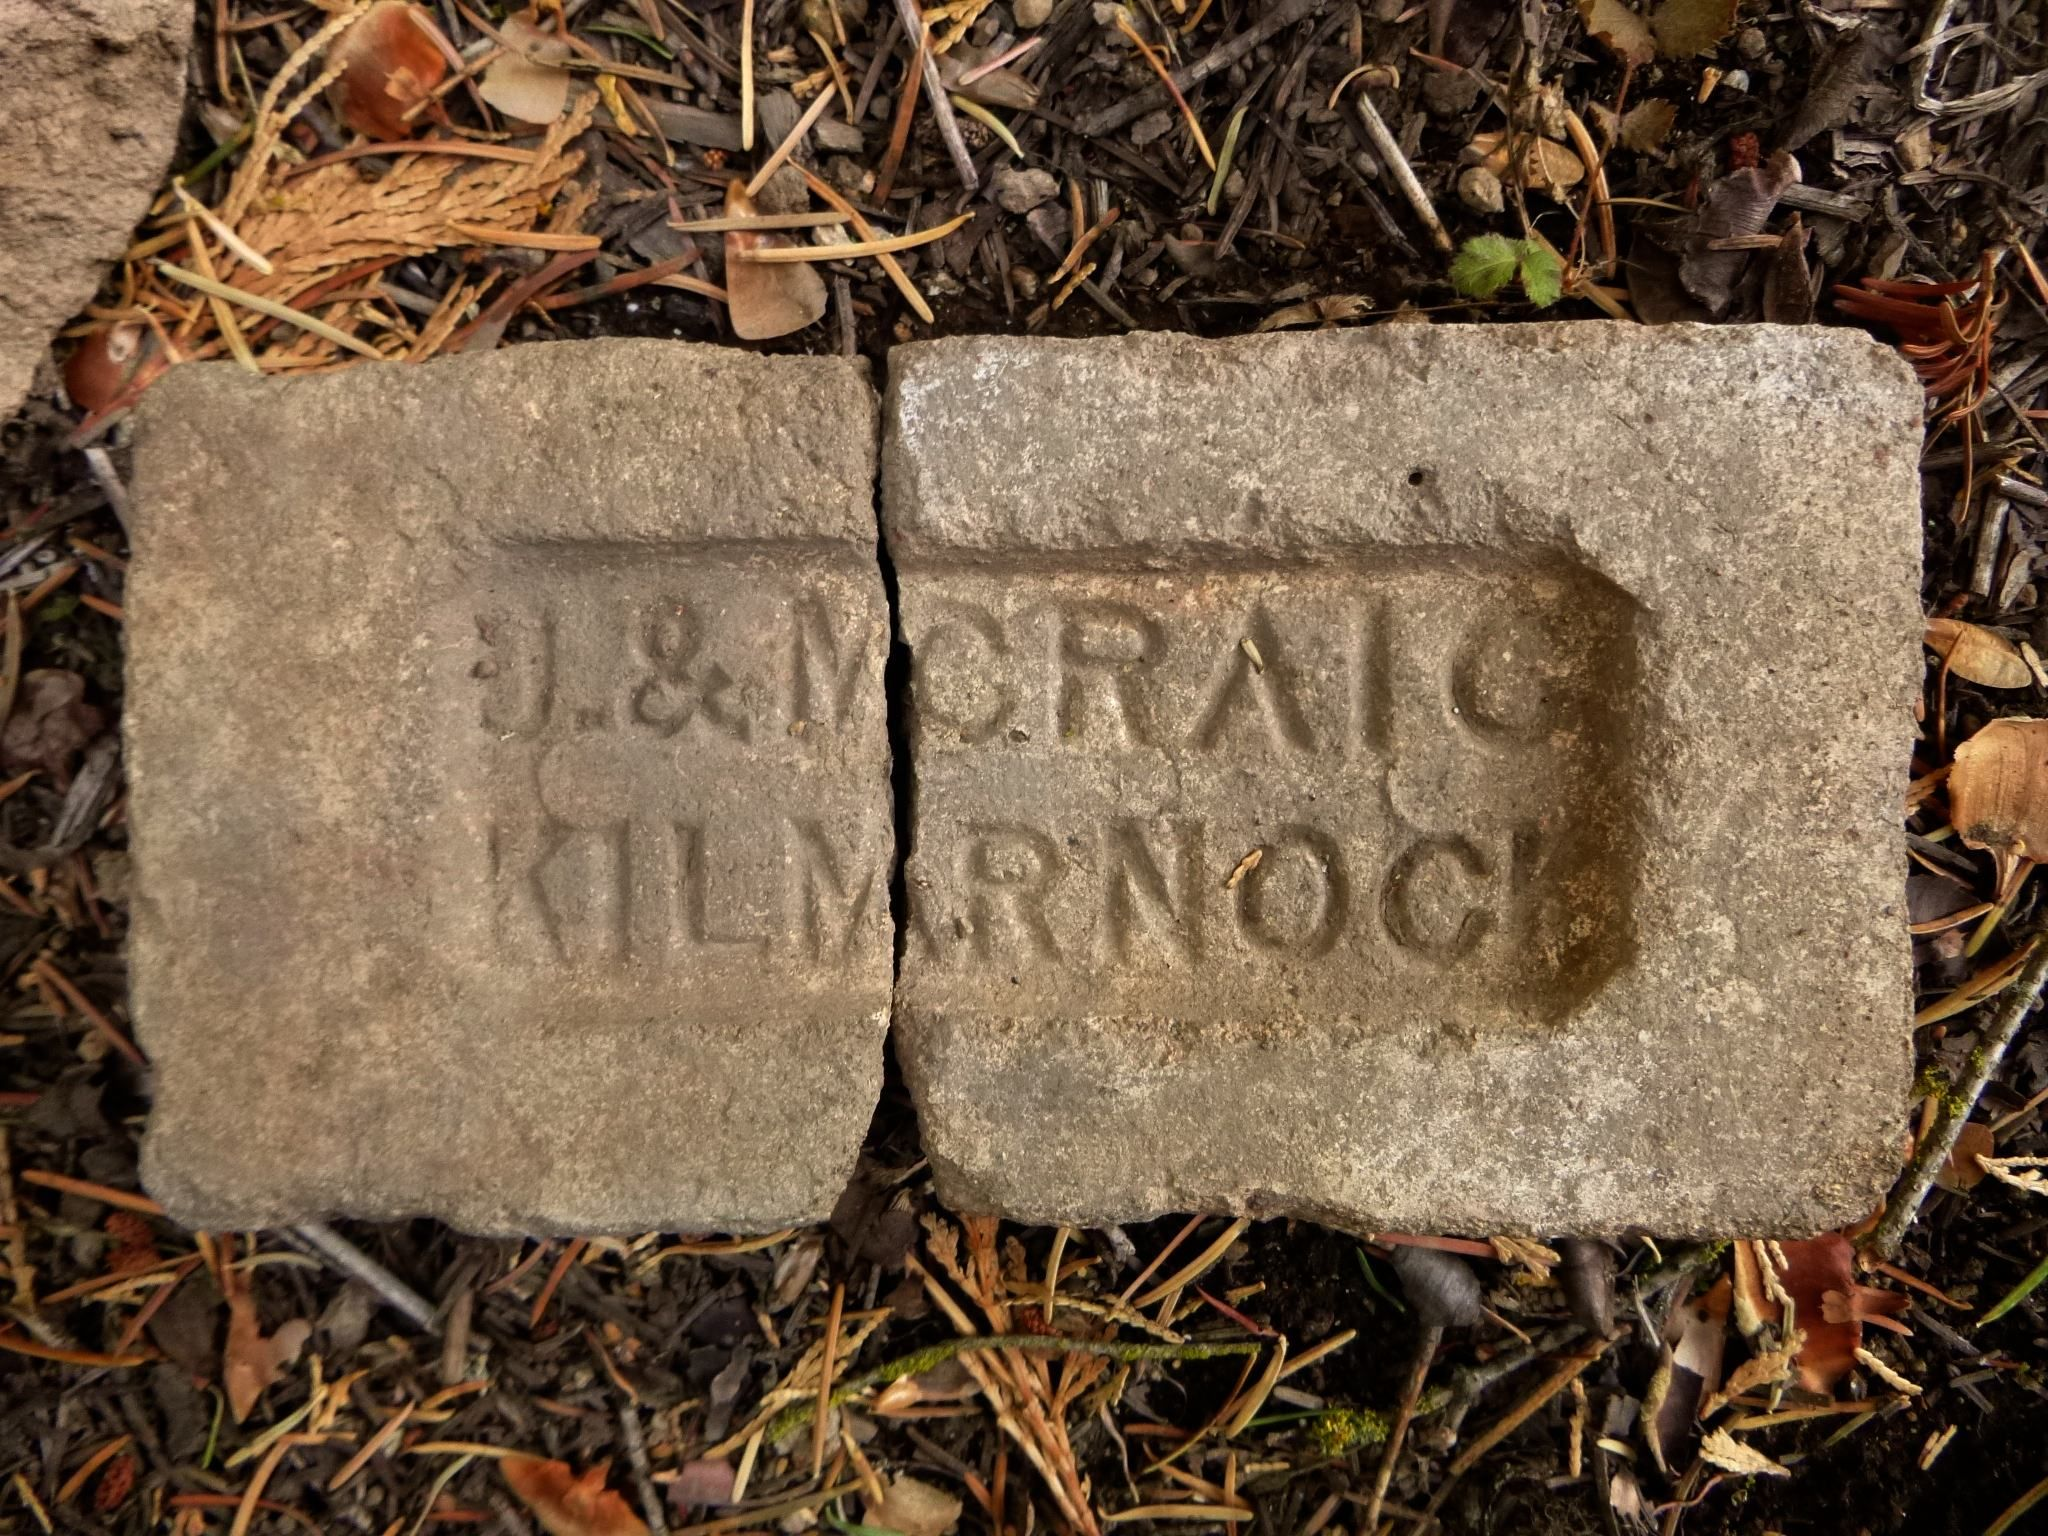 """Found this Scottish """"J&M CRAIG/KILMARNOCK"""" firebrick last week when I was doing volunteer work at an 1890s lumber mill site in the Sequoia National Forest, California."""